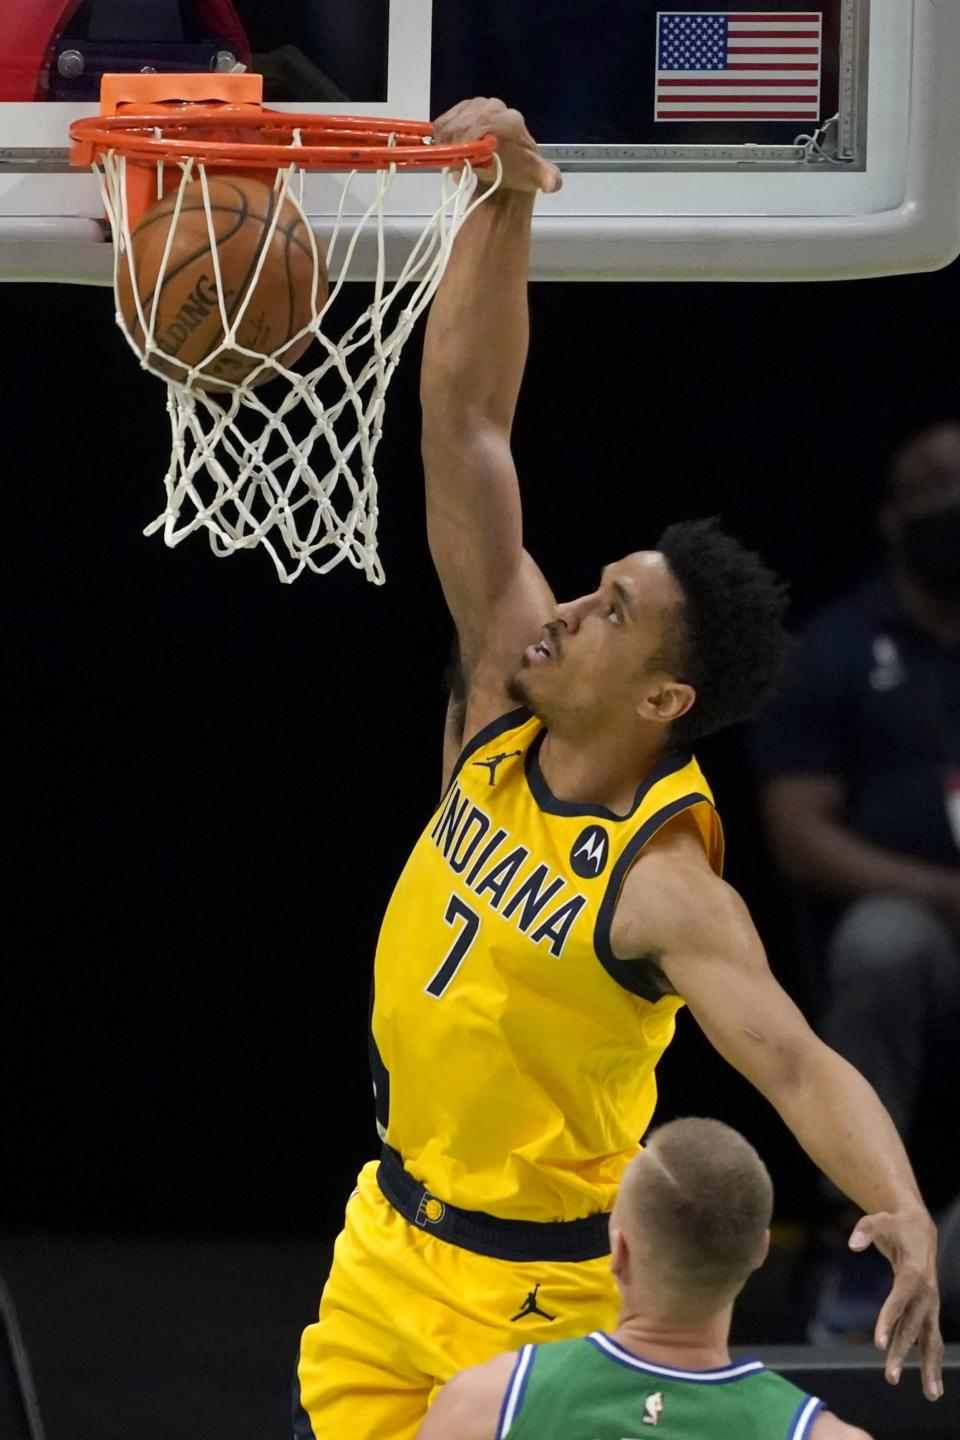 Indiana Pacers guard Malcolm Brogdon dunks during the first half of the team's NBA basketball game against the Dallas Mavericks in Dallas, Friday, March 26, 2021. (AP Photo/Tony Gutierrez)